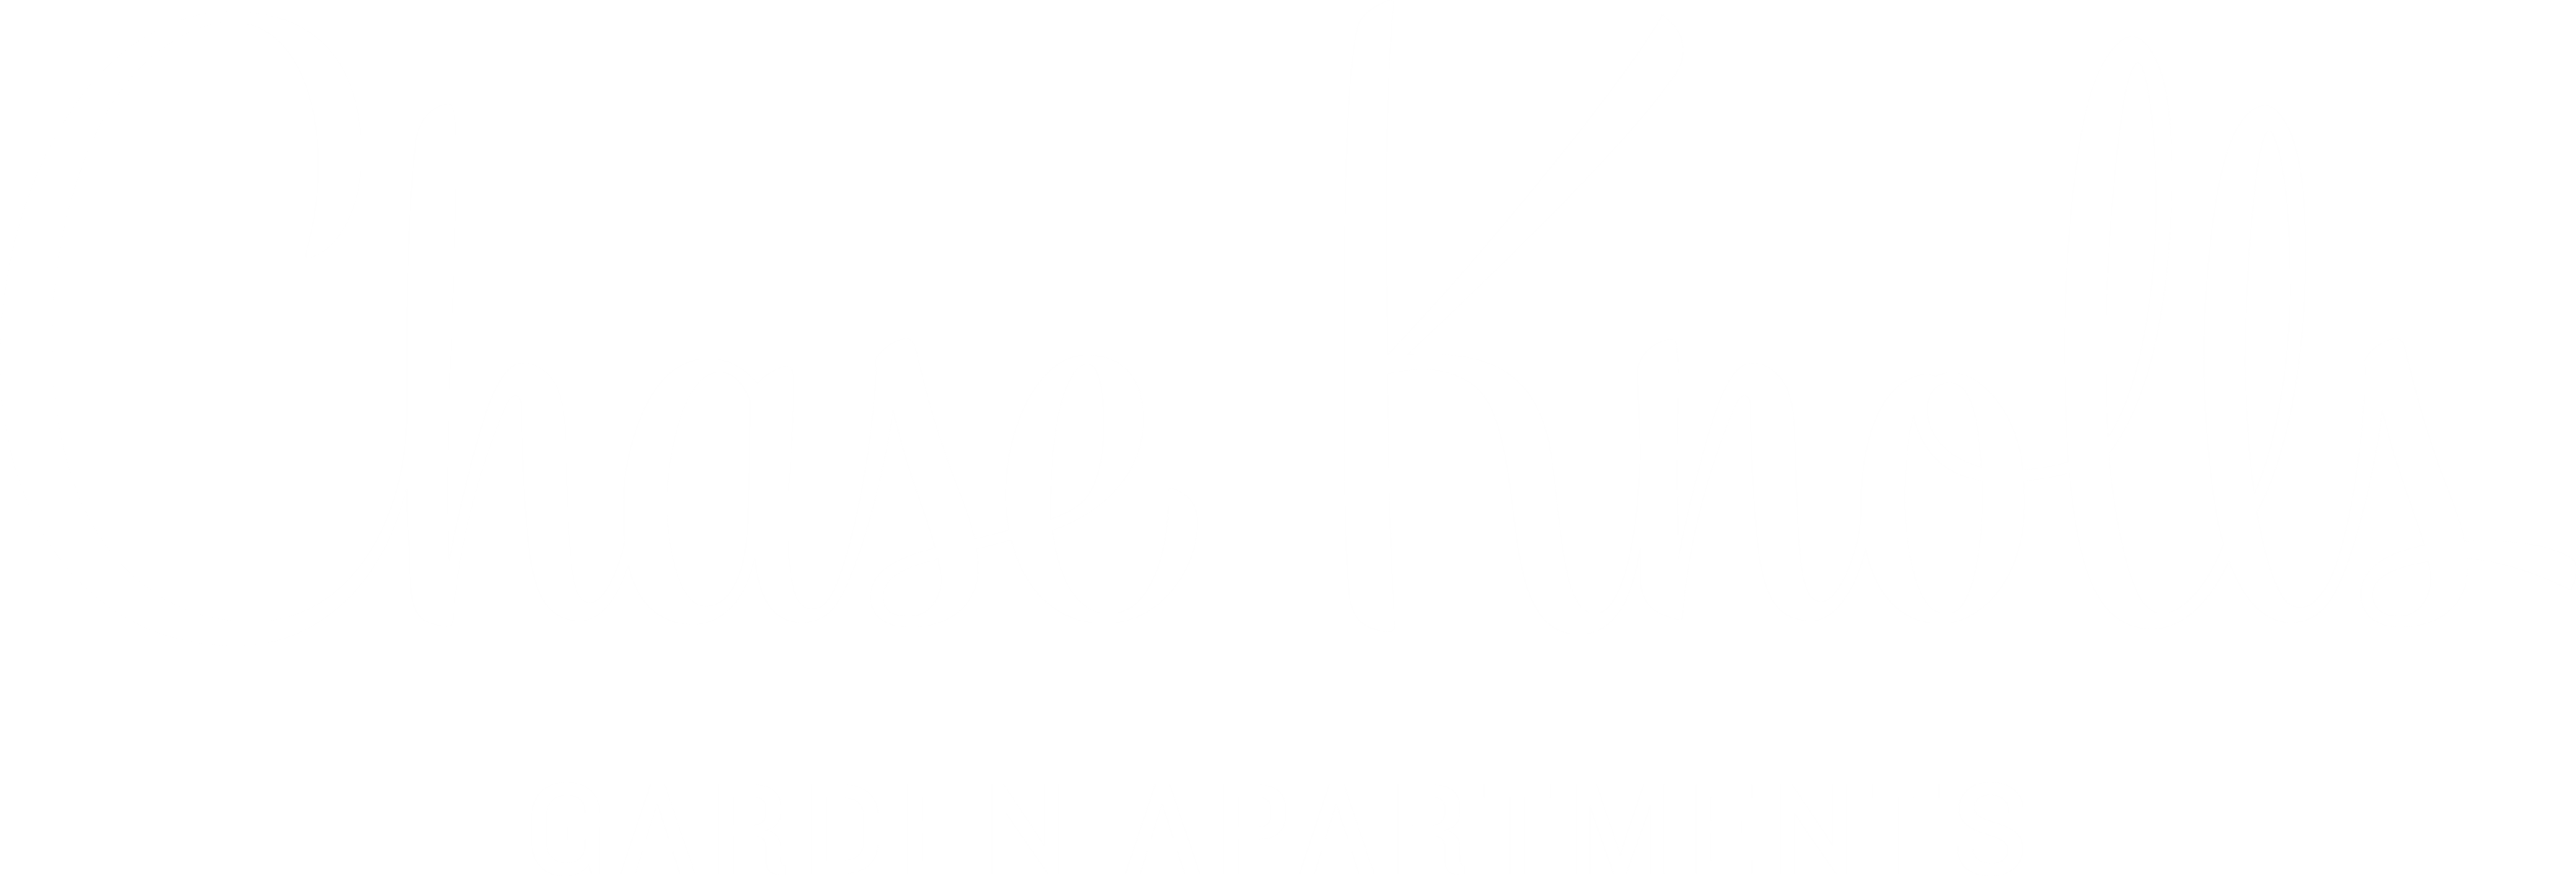 chase knolls apartments | Chase Knolls Garden Apartments Sherman Oaks CA